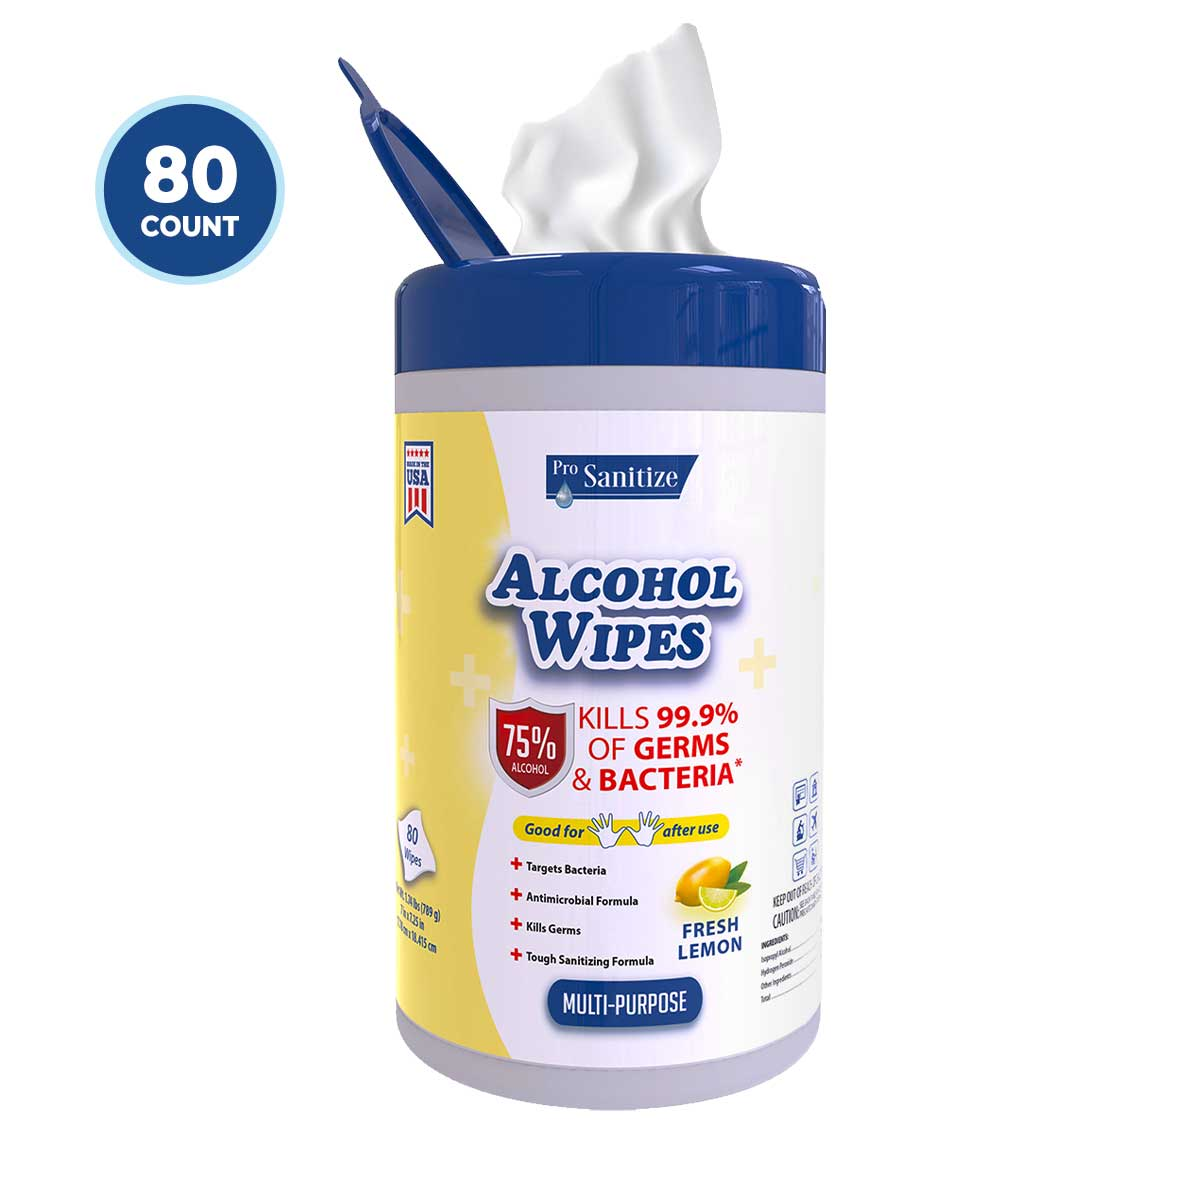 Multi-Purpose Disinfectant Wipes 75% Alcohol Fresh Lemon Scent - Think360 Inc